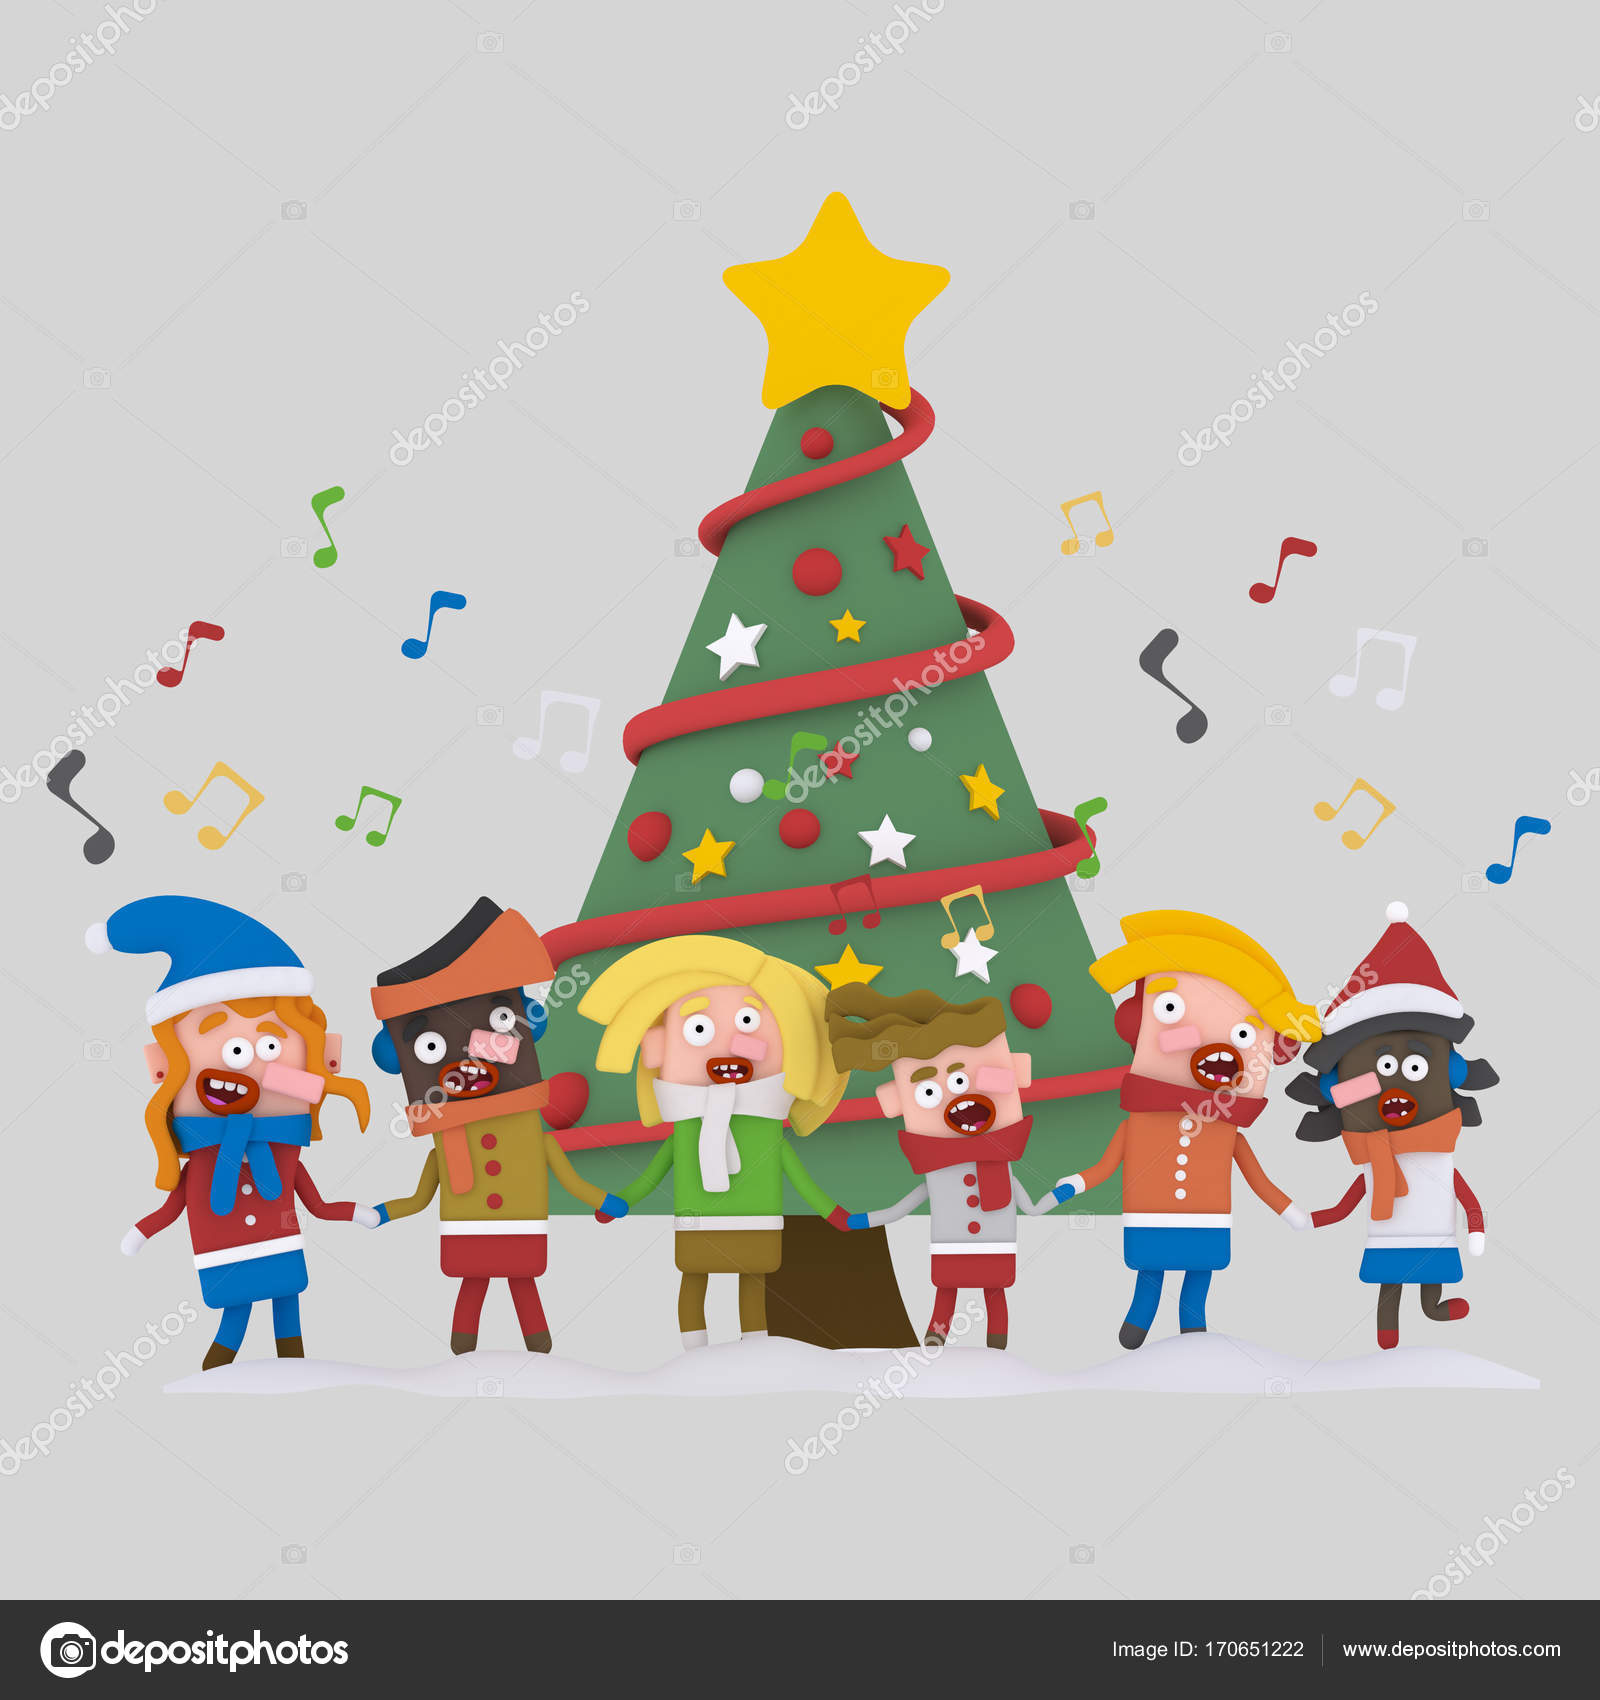 kids singing xmas songsisolate easy background remove easy combine for custom illustration contact me photo by rasinmotion